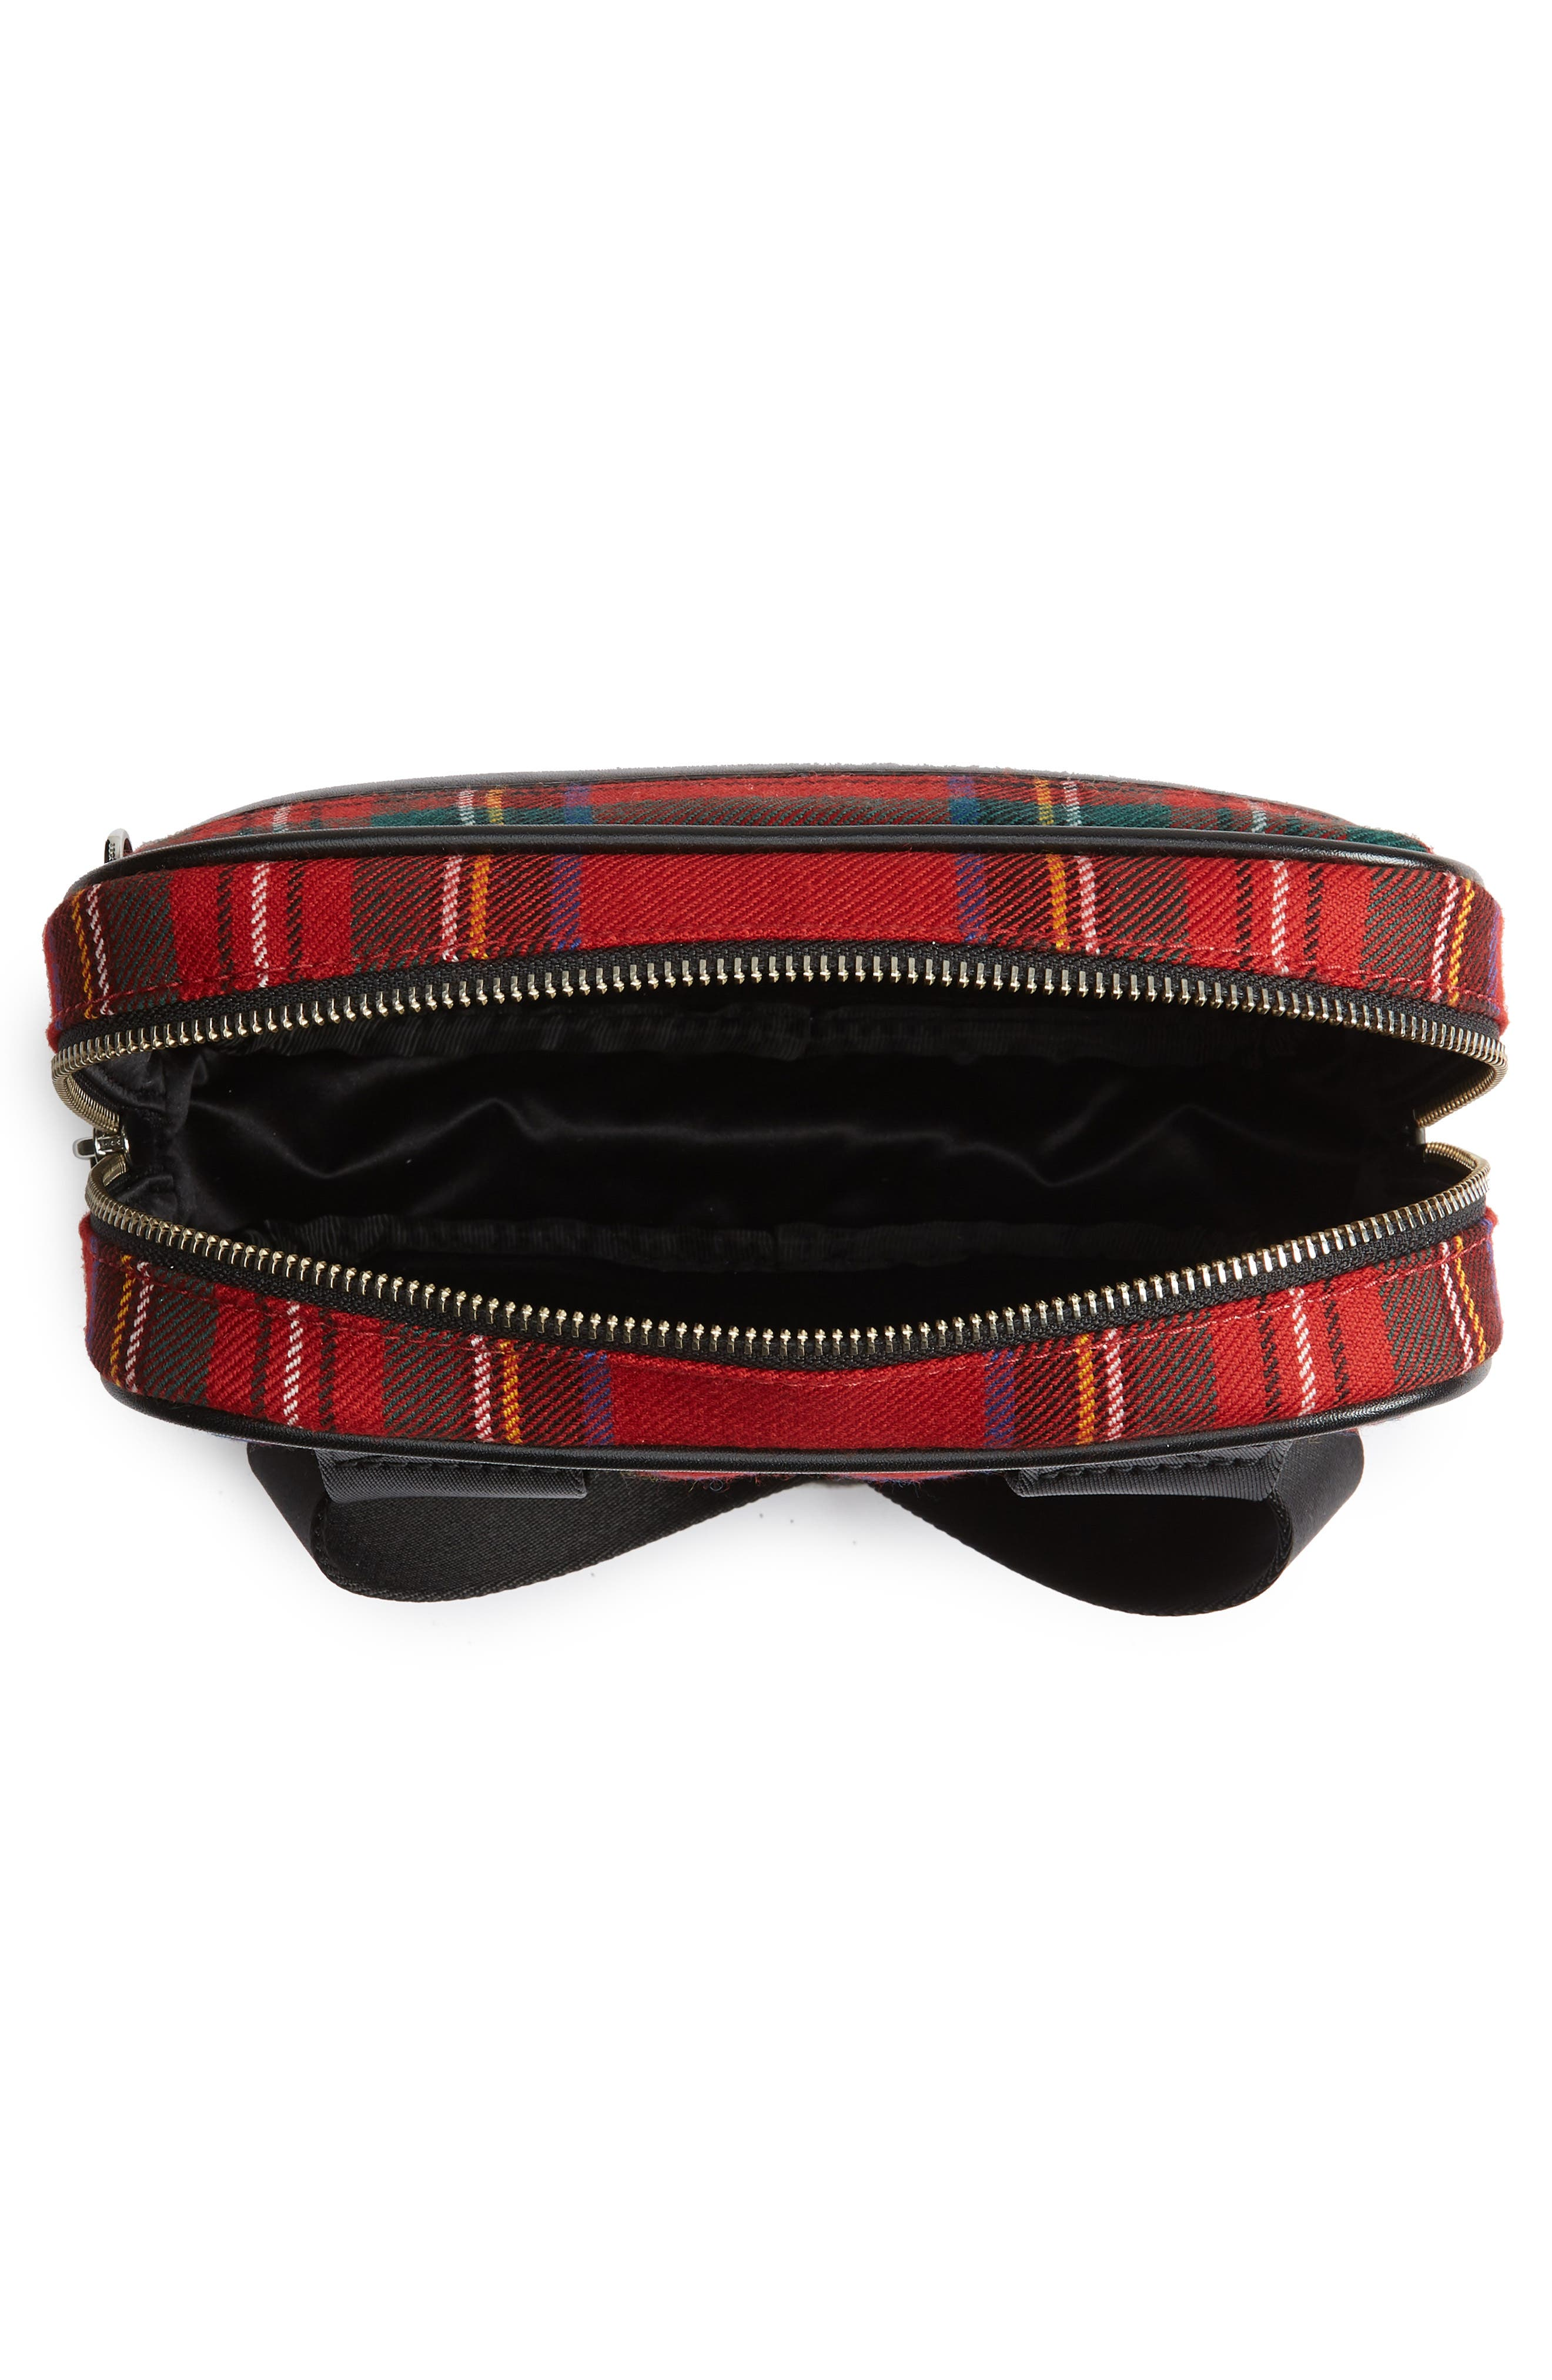 Sport Plaid Belt Bag,                             Alternate thumbnail 4, color,                             Red Multi